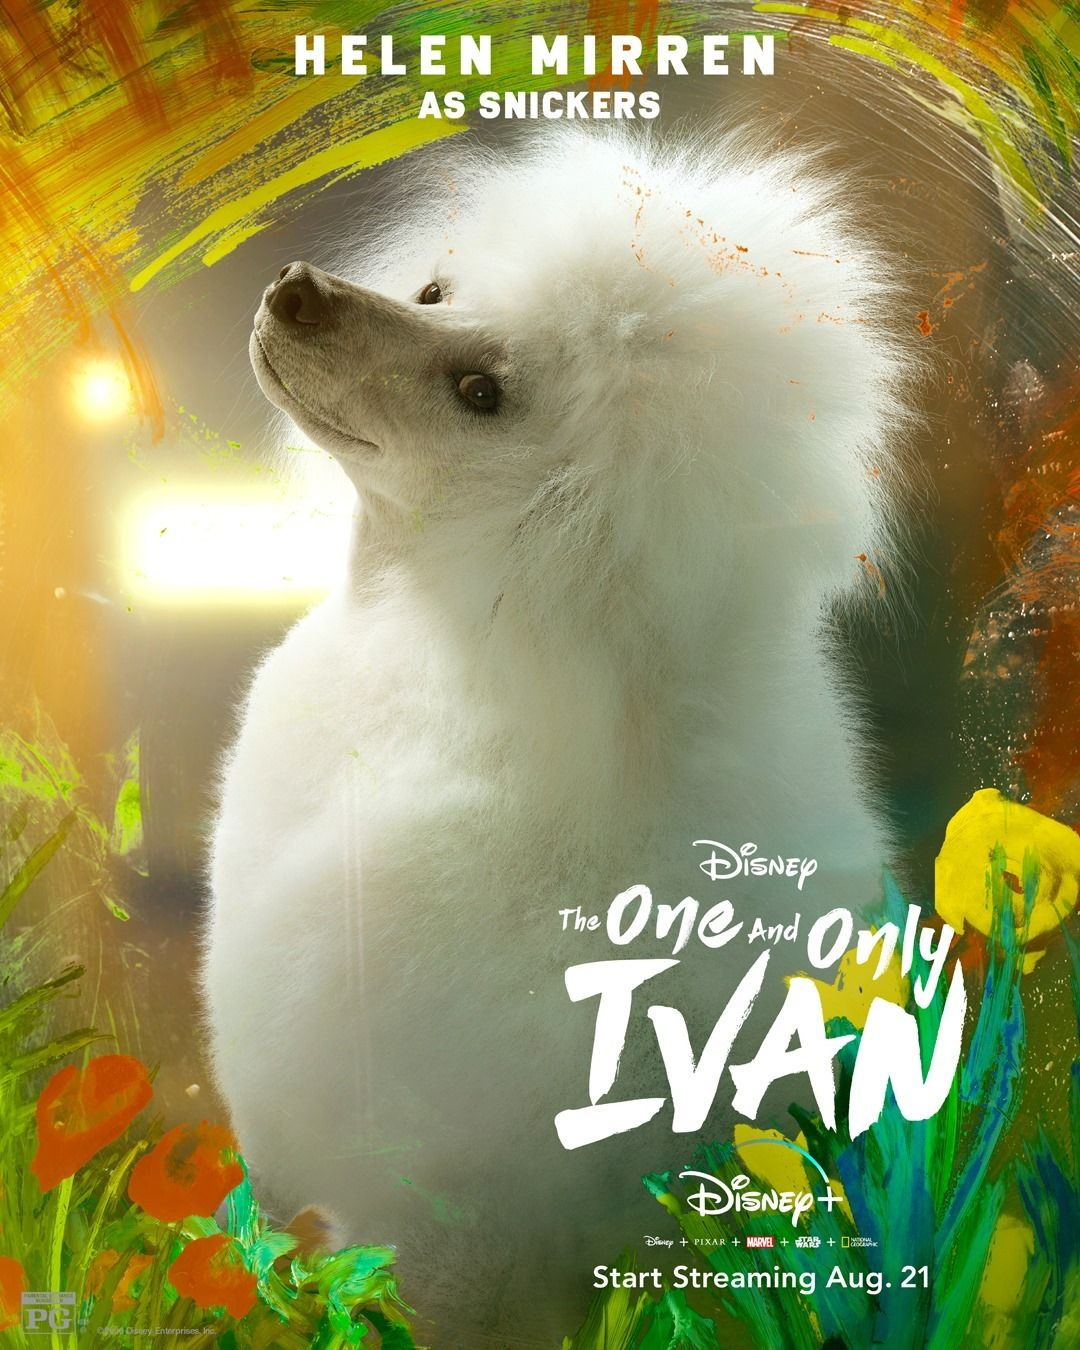 The One and Only Ivan Poster 4: Full Size Poster Image